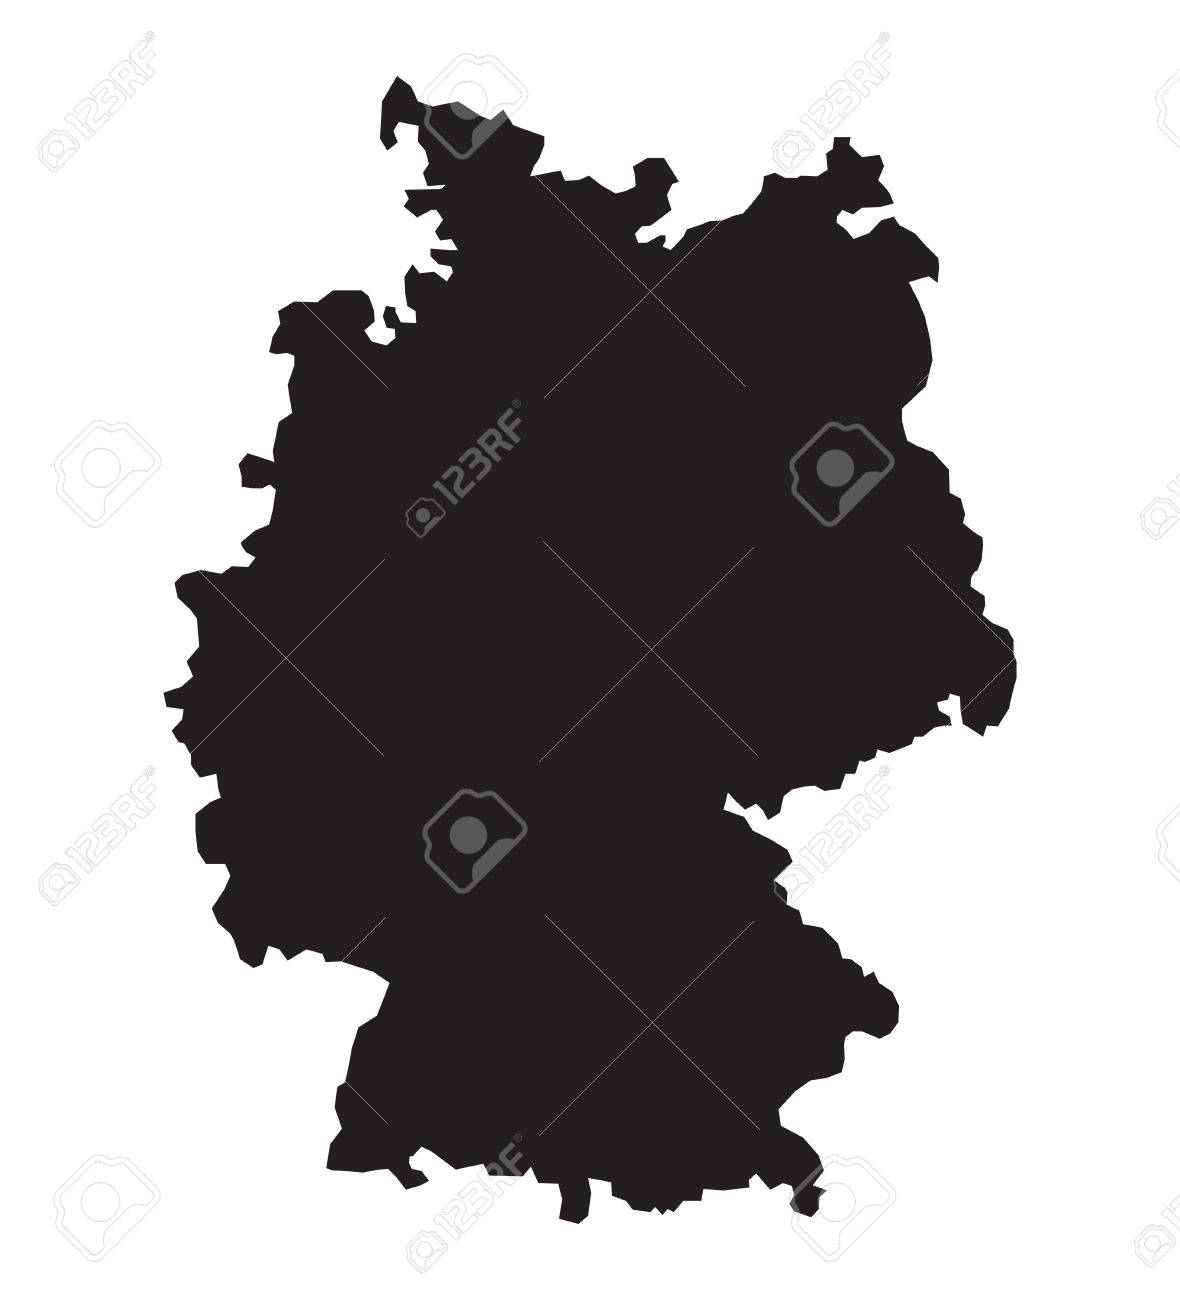 Germany map - 34063295